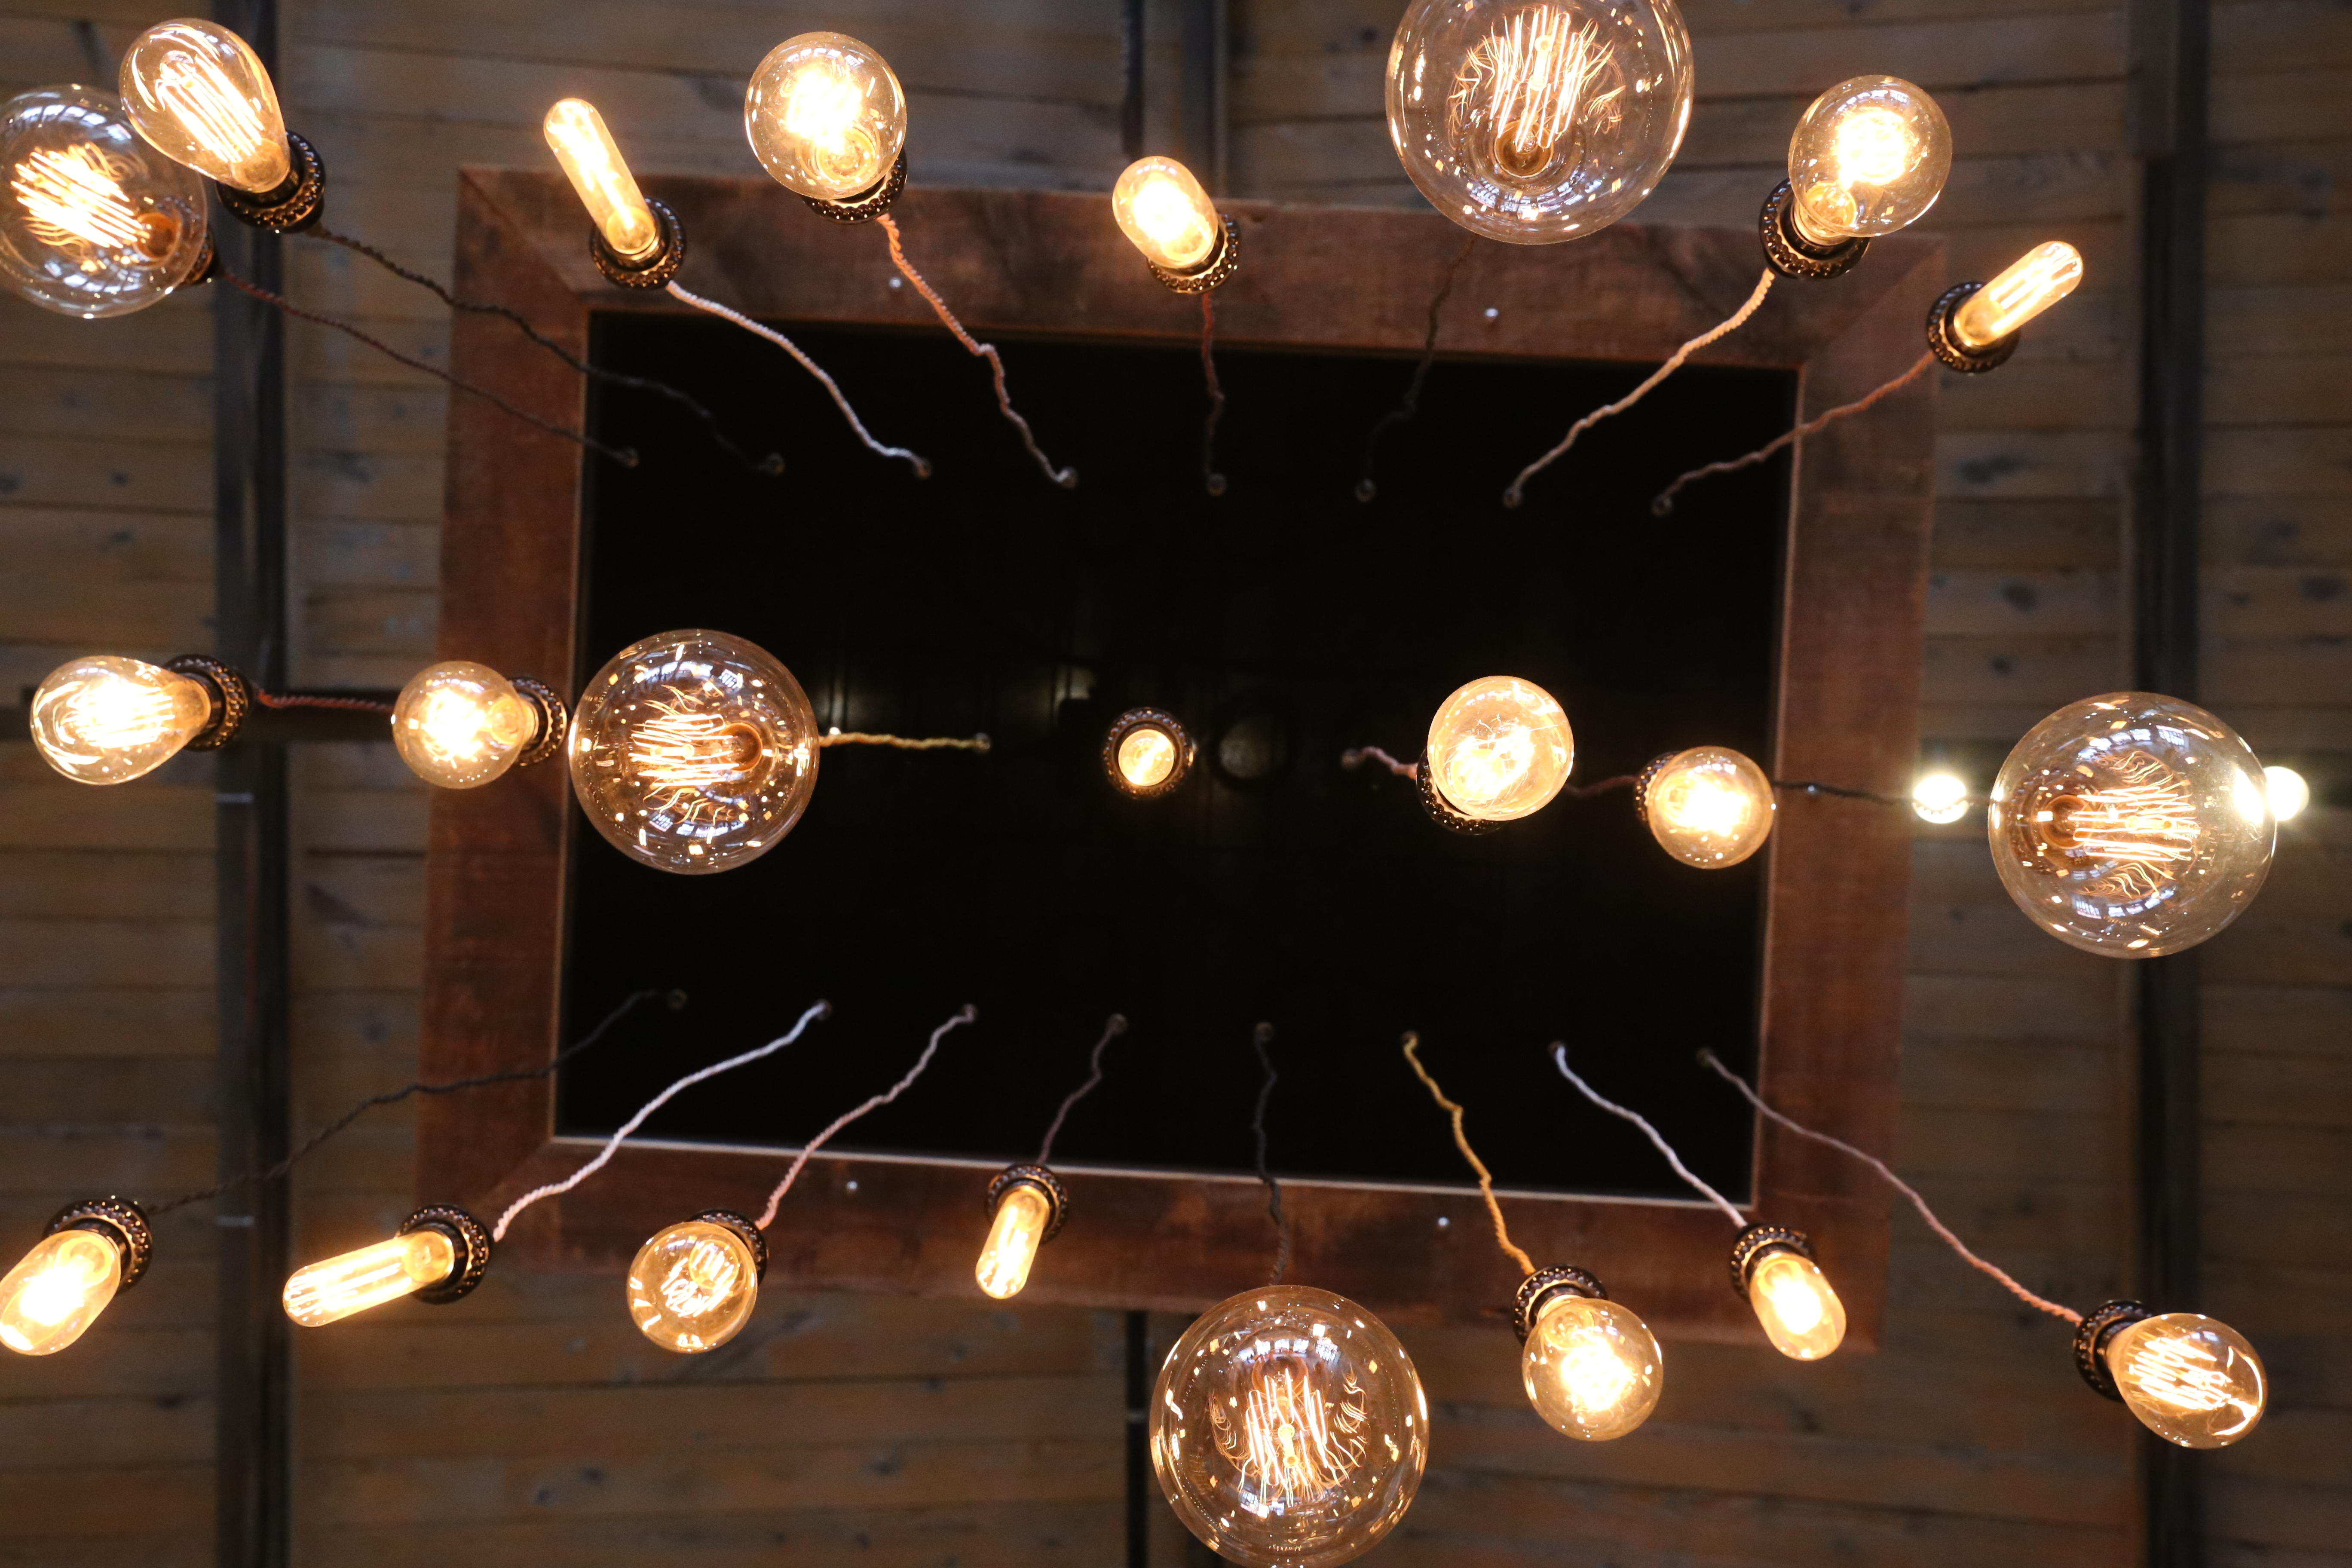 Custom Pendant Fixture with various size bulbs